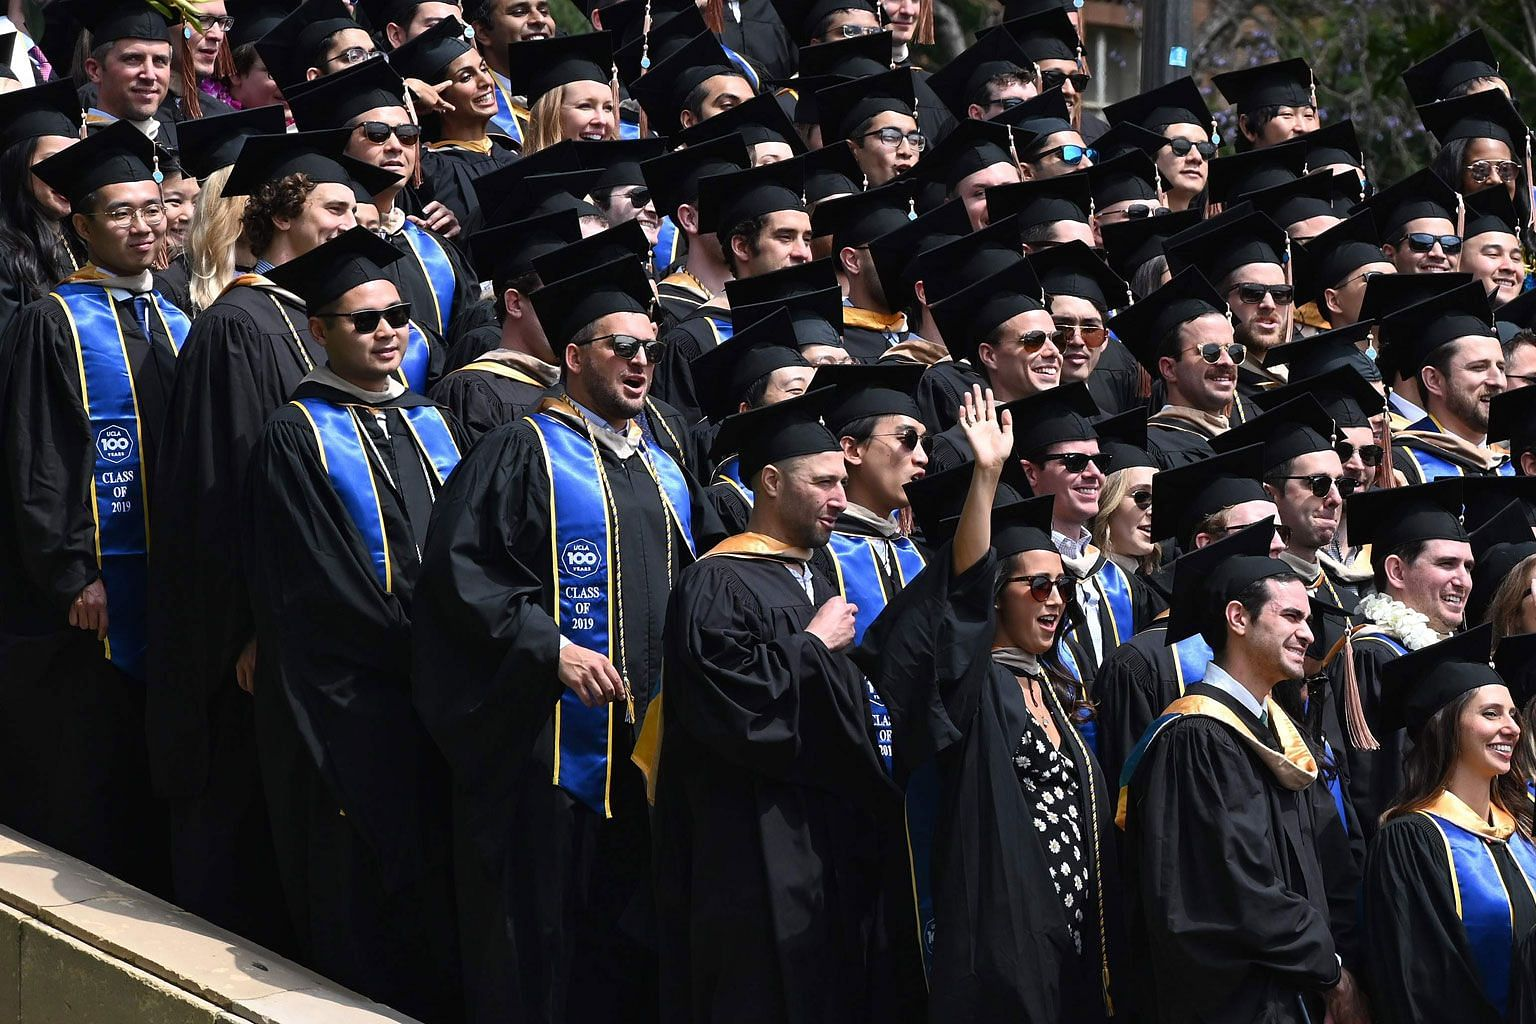 Graduating students posing for a class picture at the University of California Los Angeles on June 14. Some 360,000 Chinese students study in the US. The assertion that the Communist Party is somehow exerting control over this number from afar denies